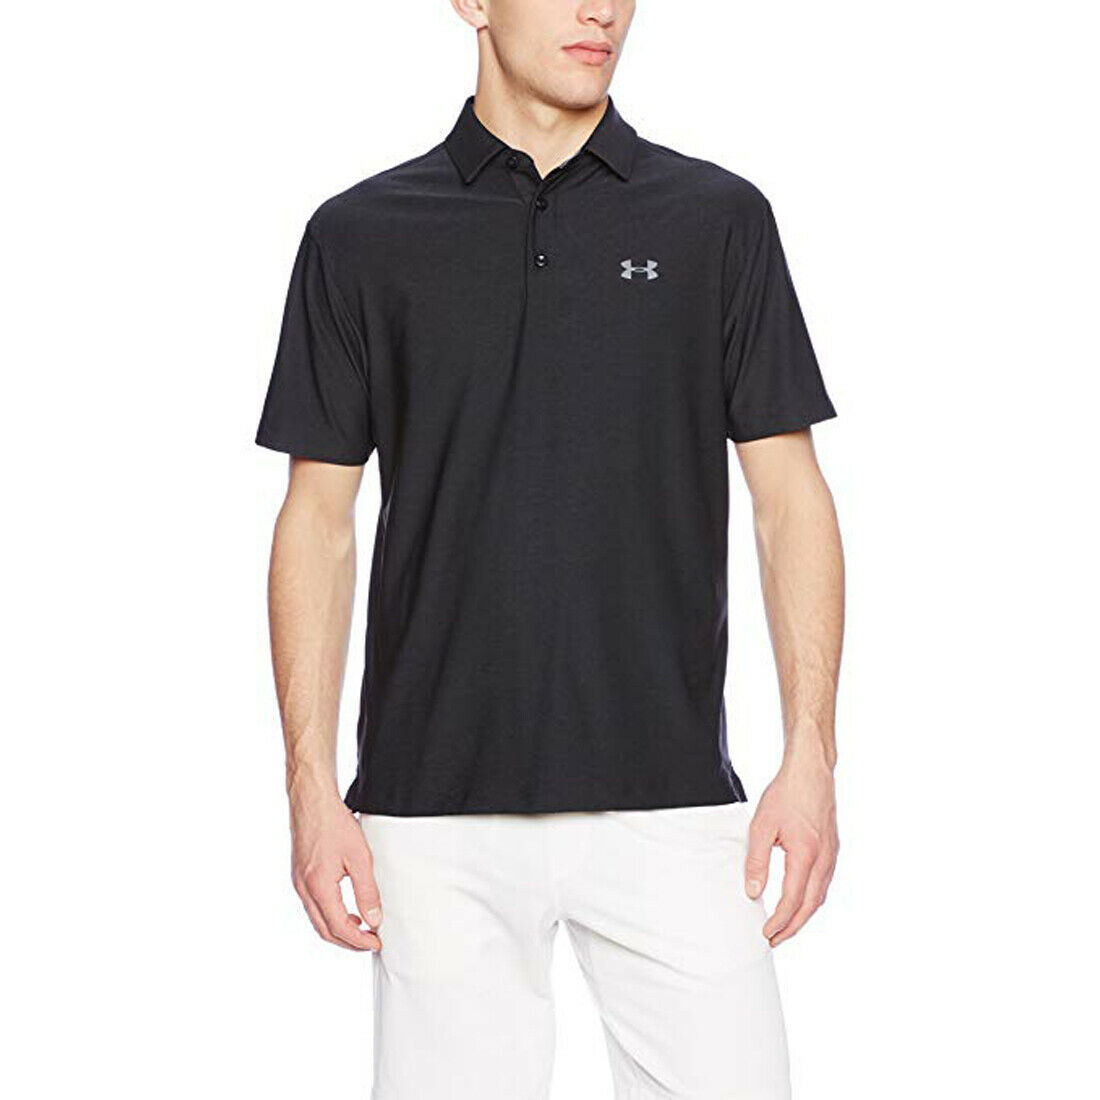 Primary image for Under Armour Men's Playoff Polo, Black (001)/Graphite, Small